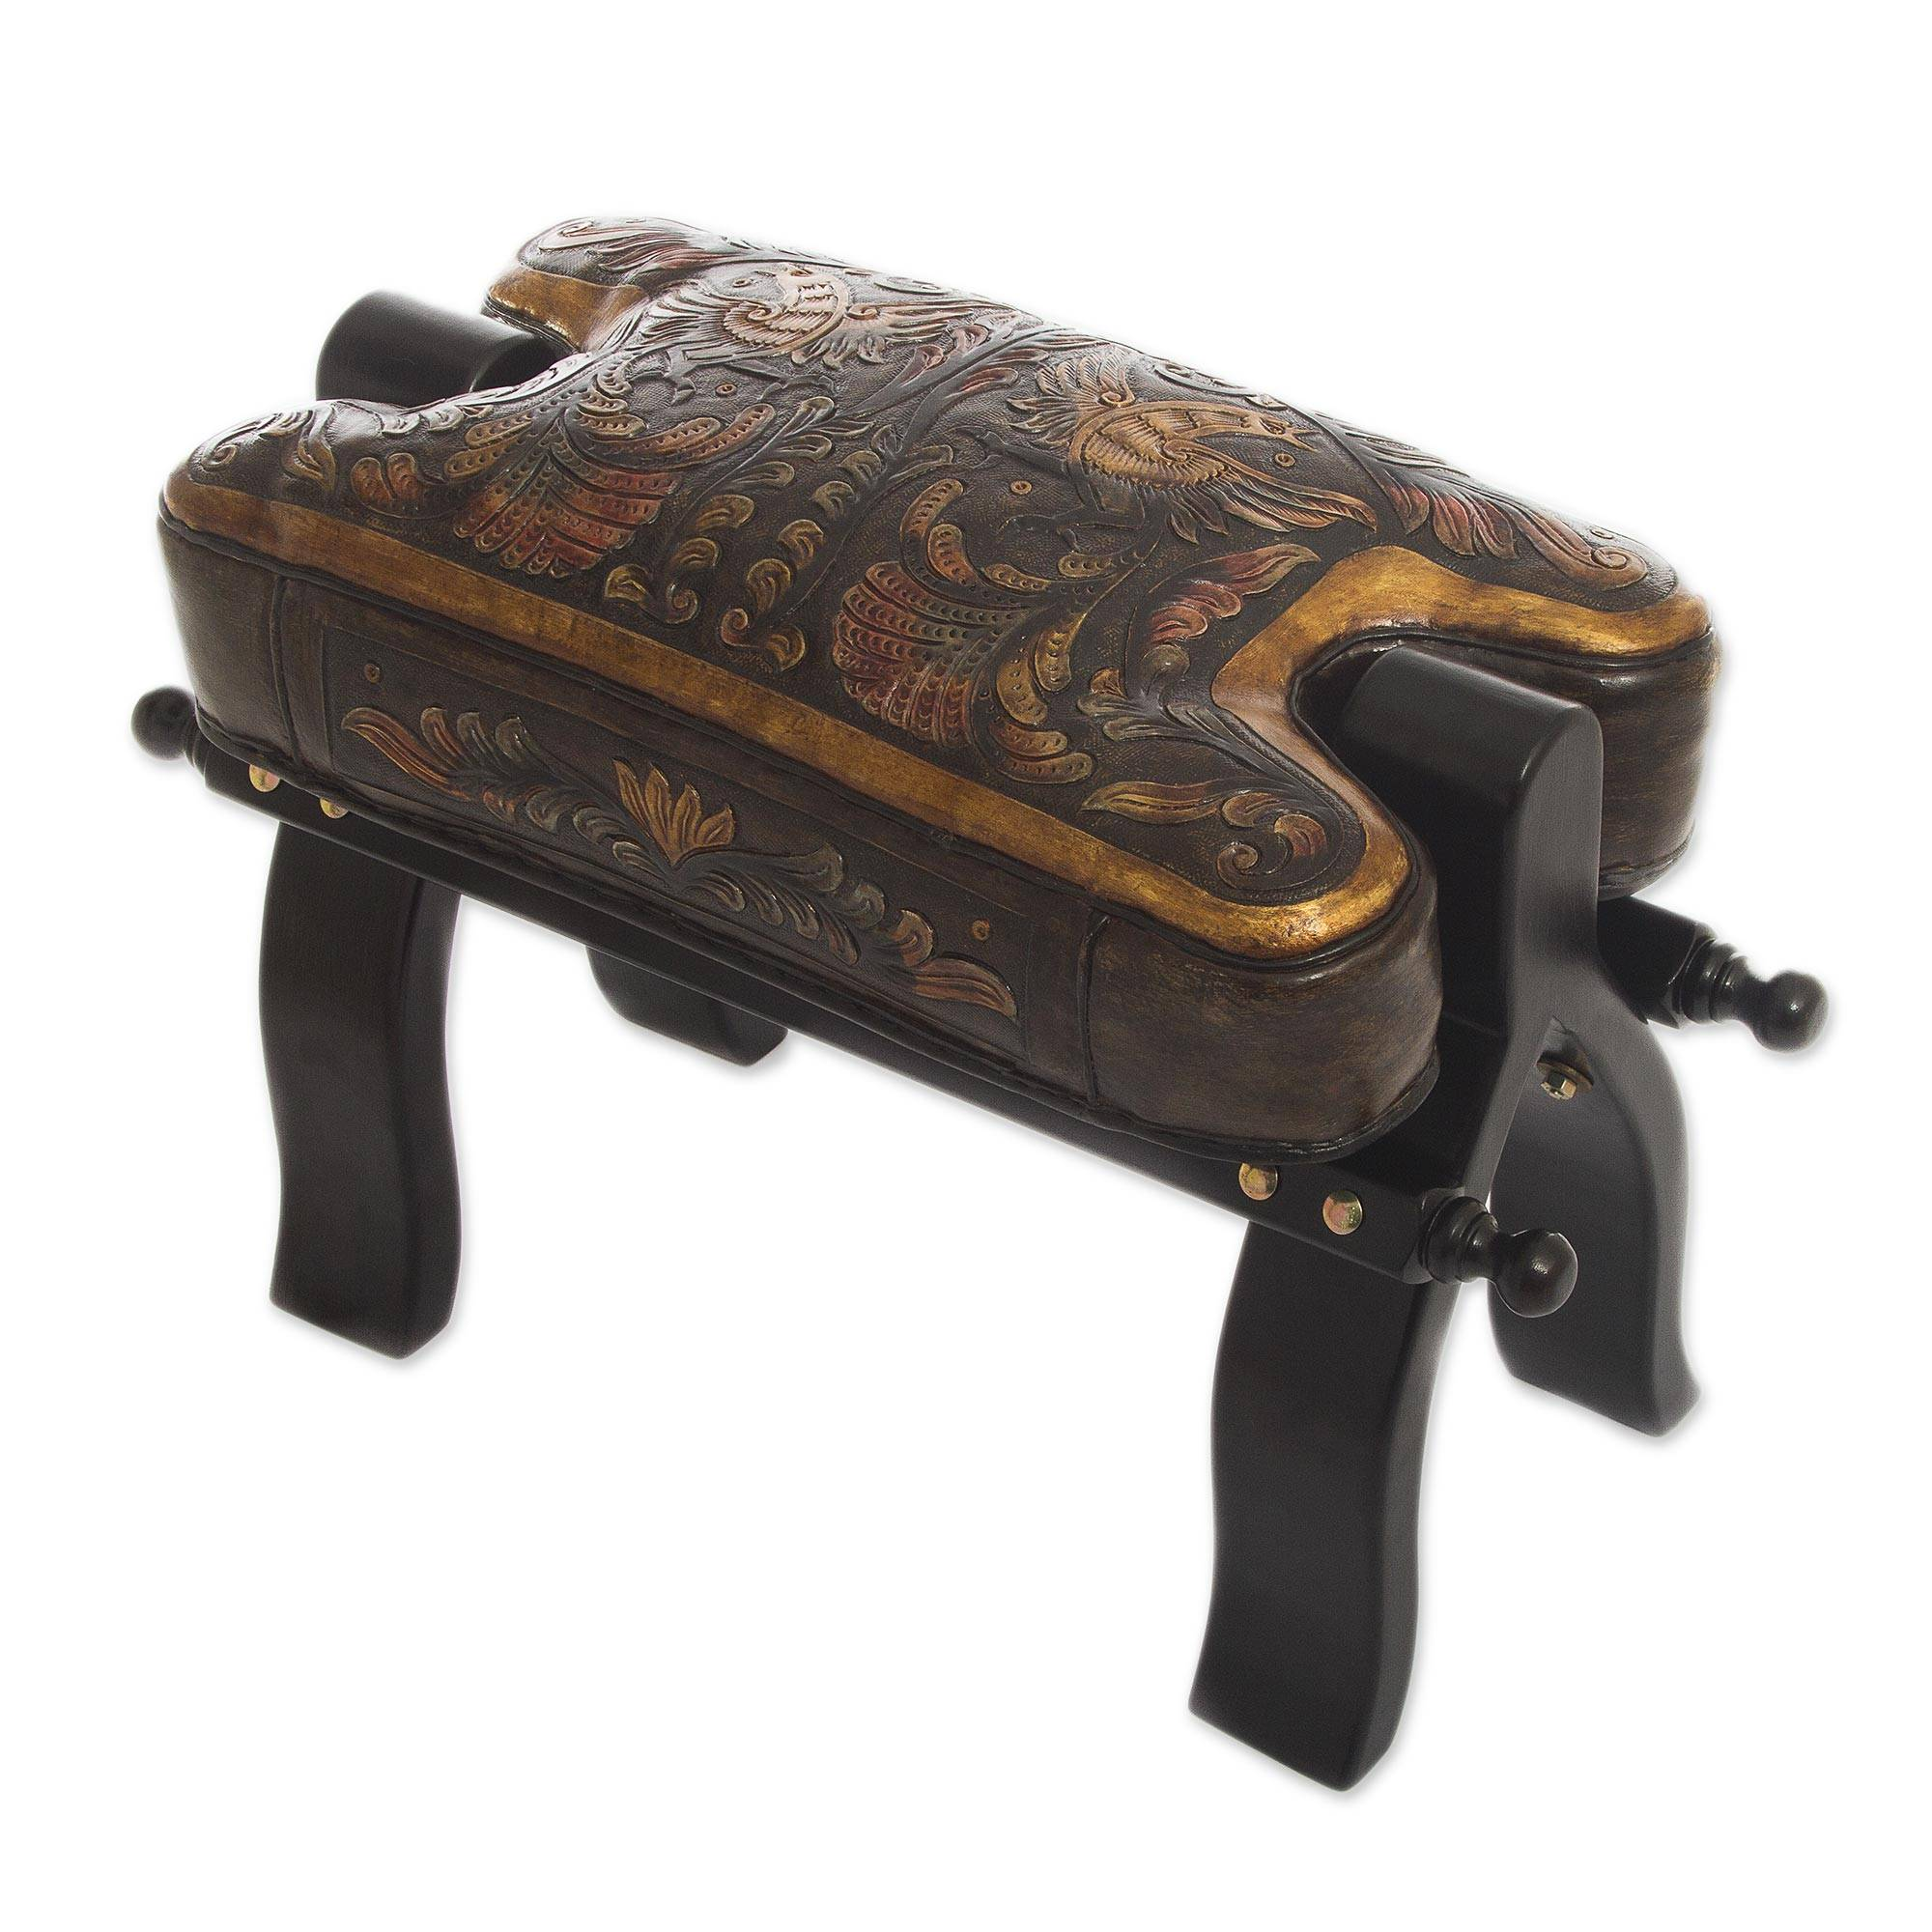 Hand Made Leather Wood Footstool Vaulted Horse Seat - Bird of Paradise | NOVICA  sc 1 st  Novica & Hand Made Leather Wood Footstool Vaulted Horse Seat - Bird of ... islam-shia.org